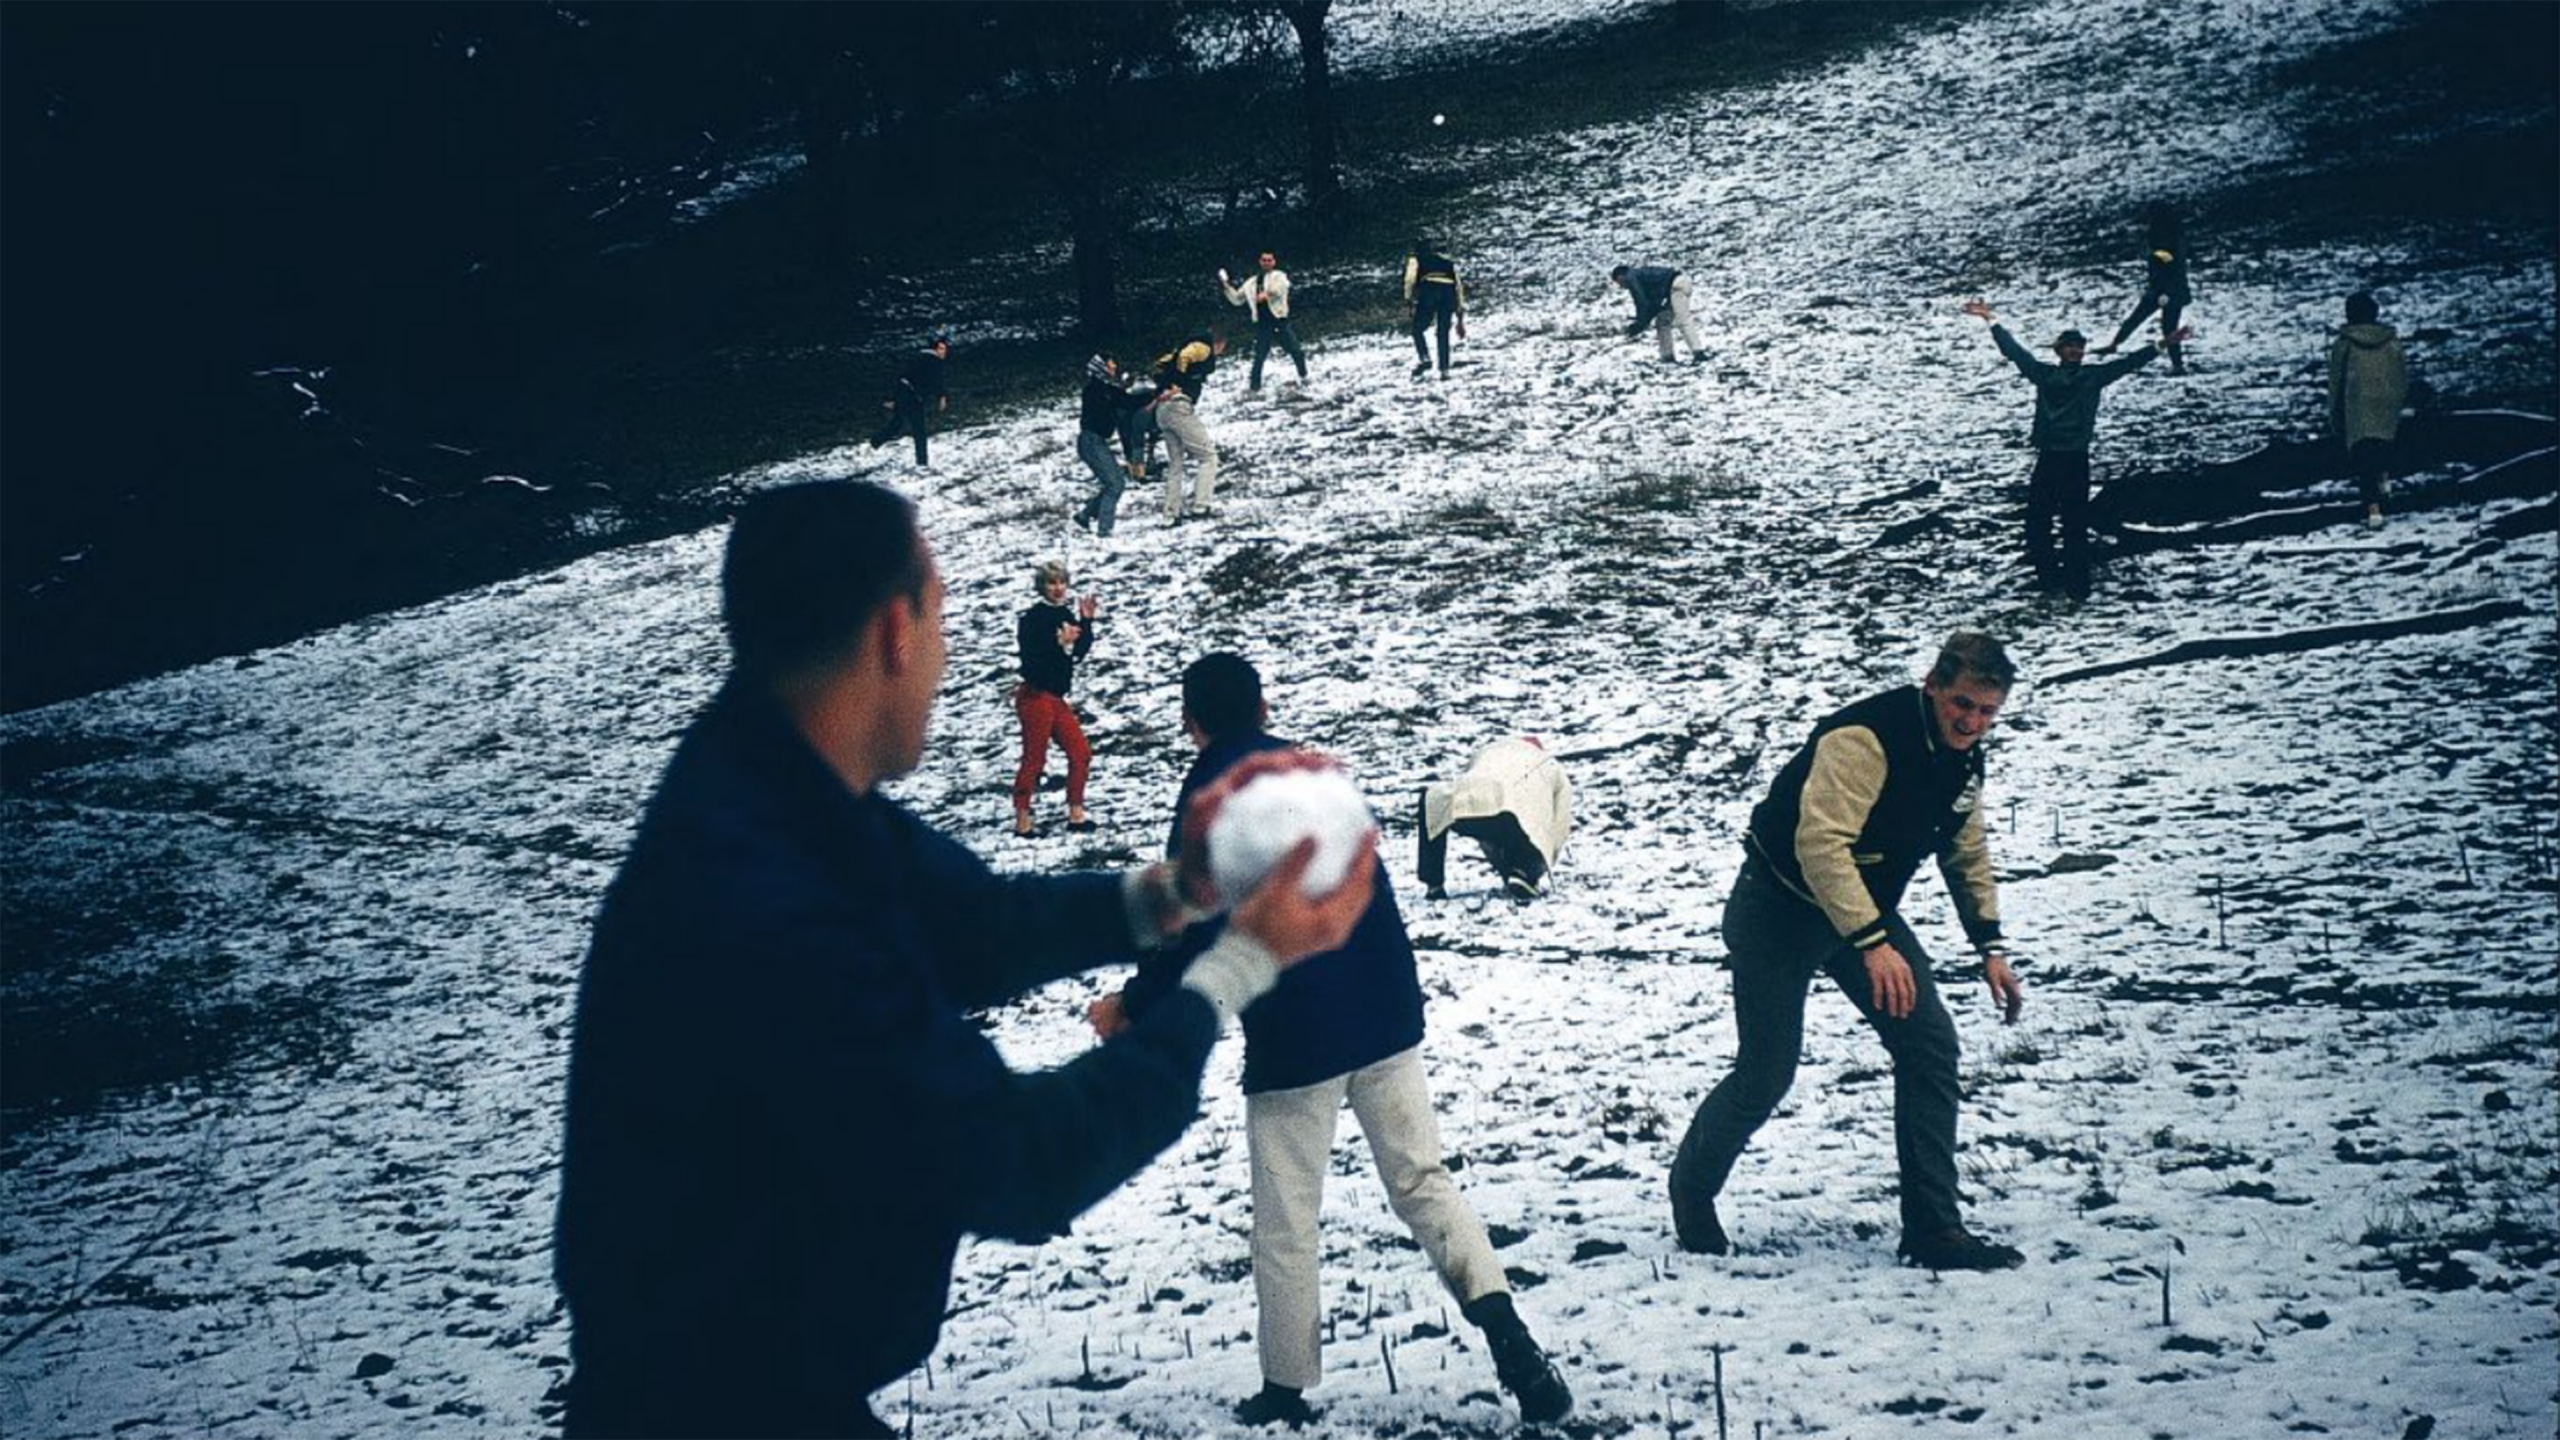 A student prepares to throw a snowball at a group of other students at Cal Poly in 1962. Photo courtesy of University Archives.